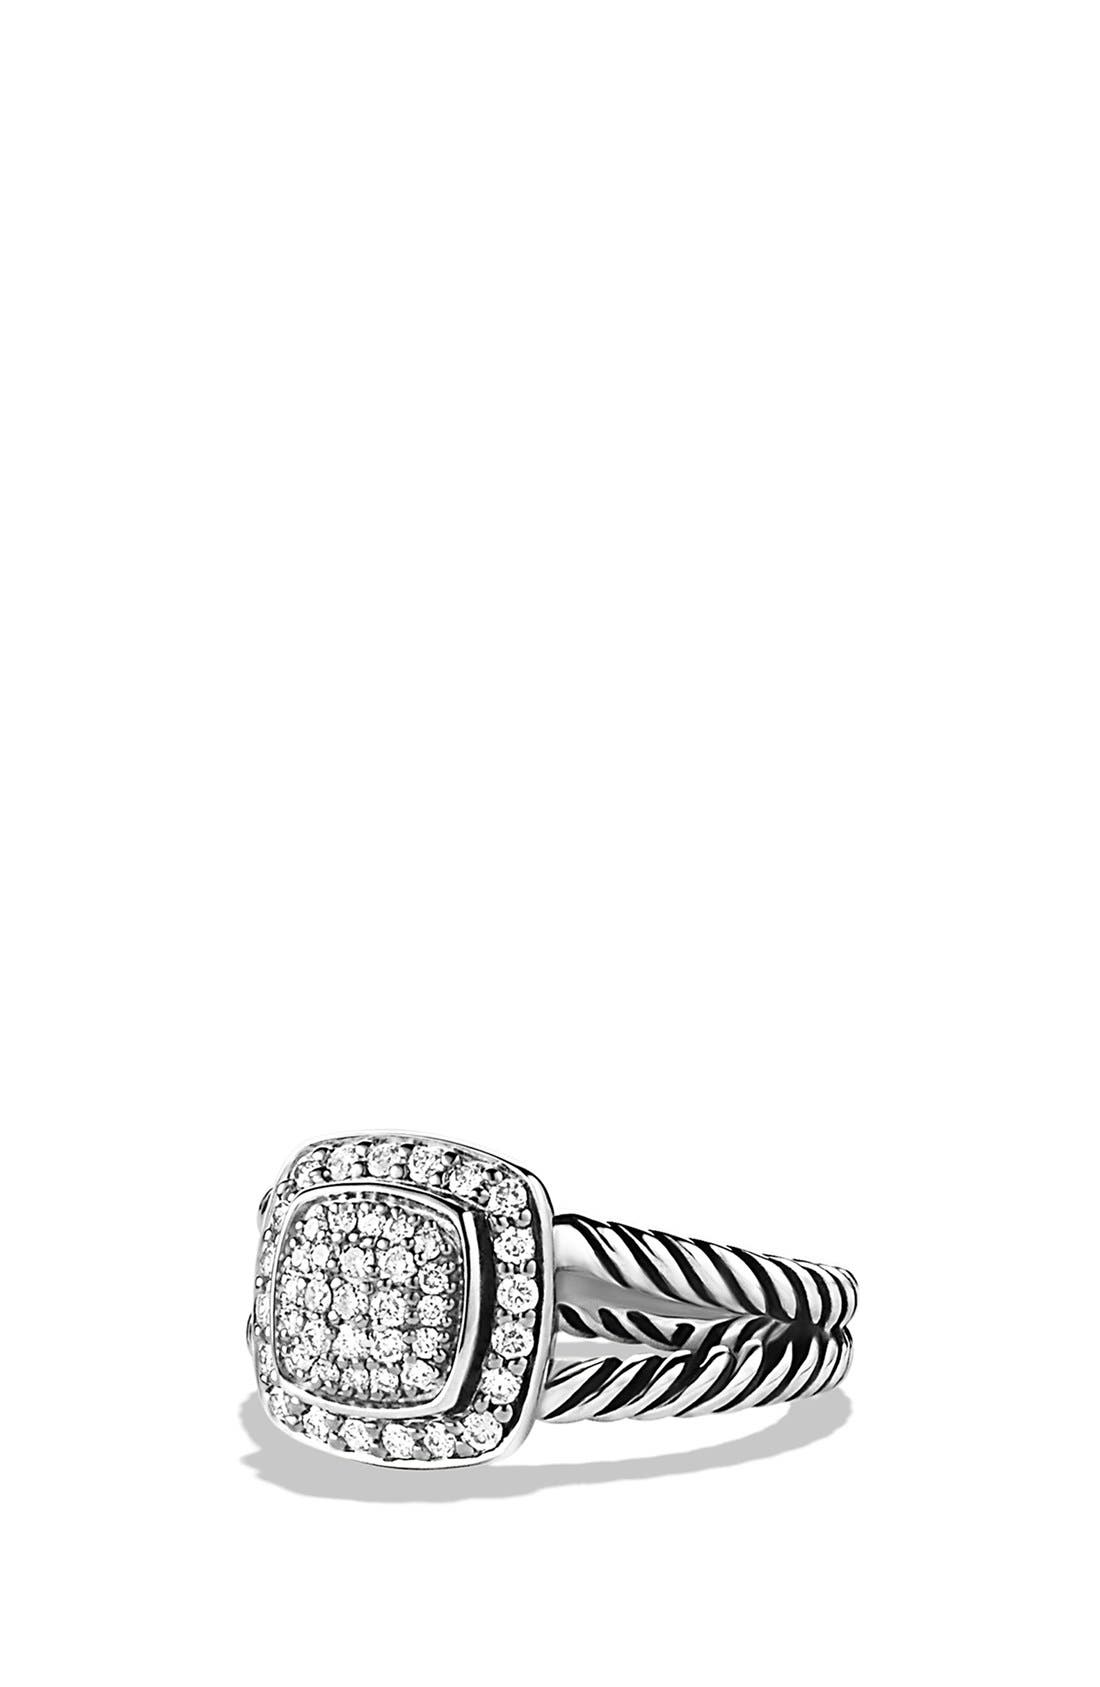 'Albion' Petite Ring with Diamonds,                             Main thumbnail 1, color,                             DIAMOND